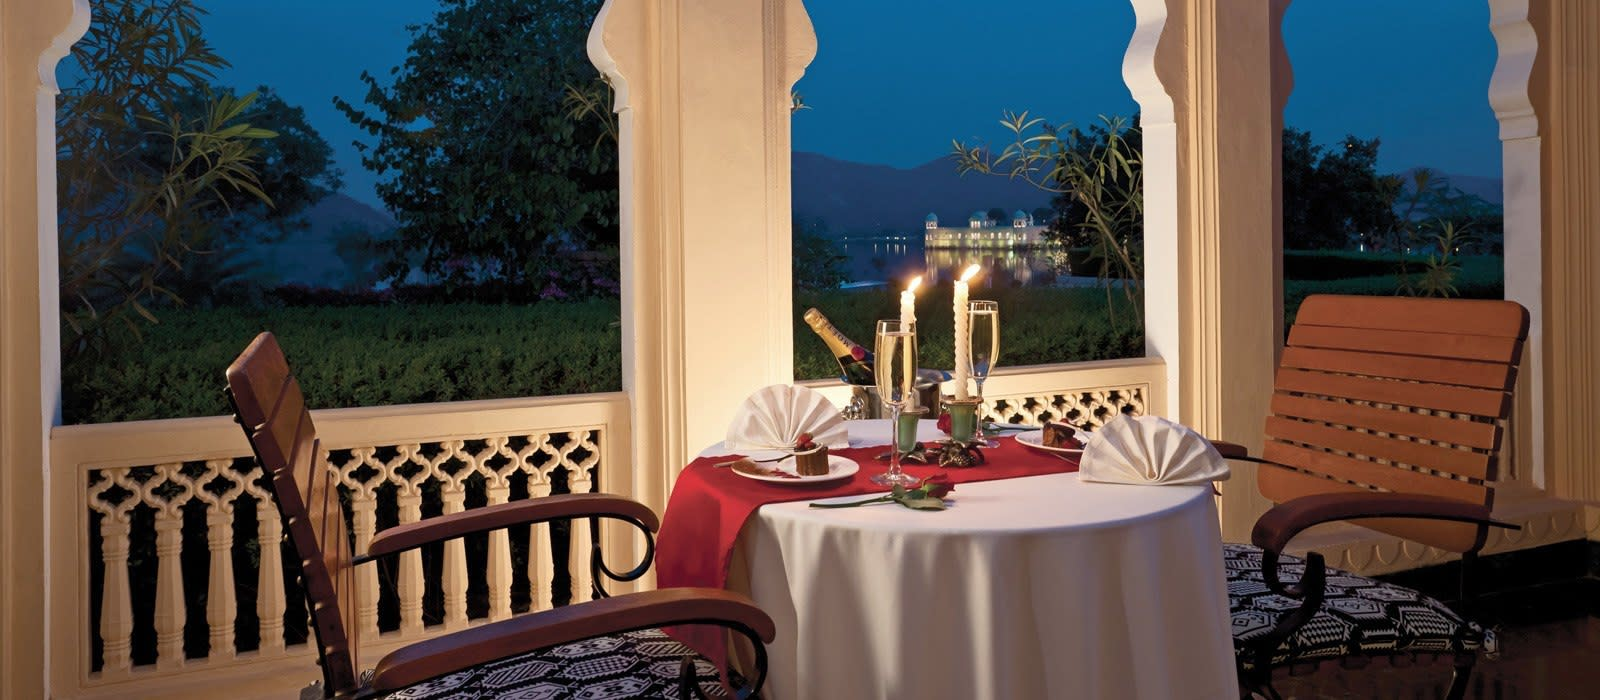 Hotel The Trident Jaipur North India